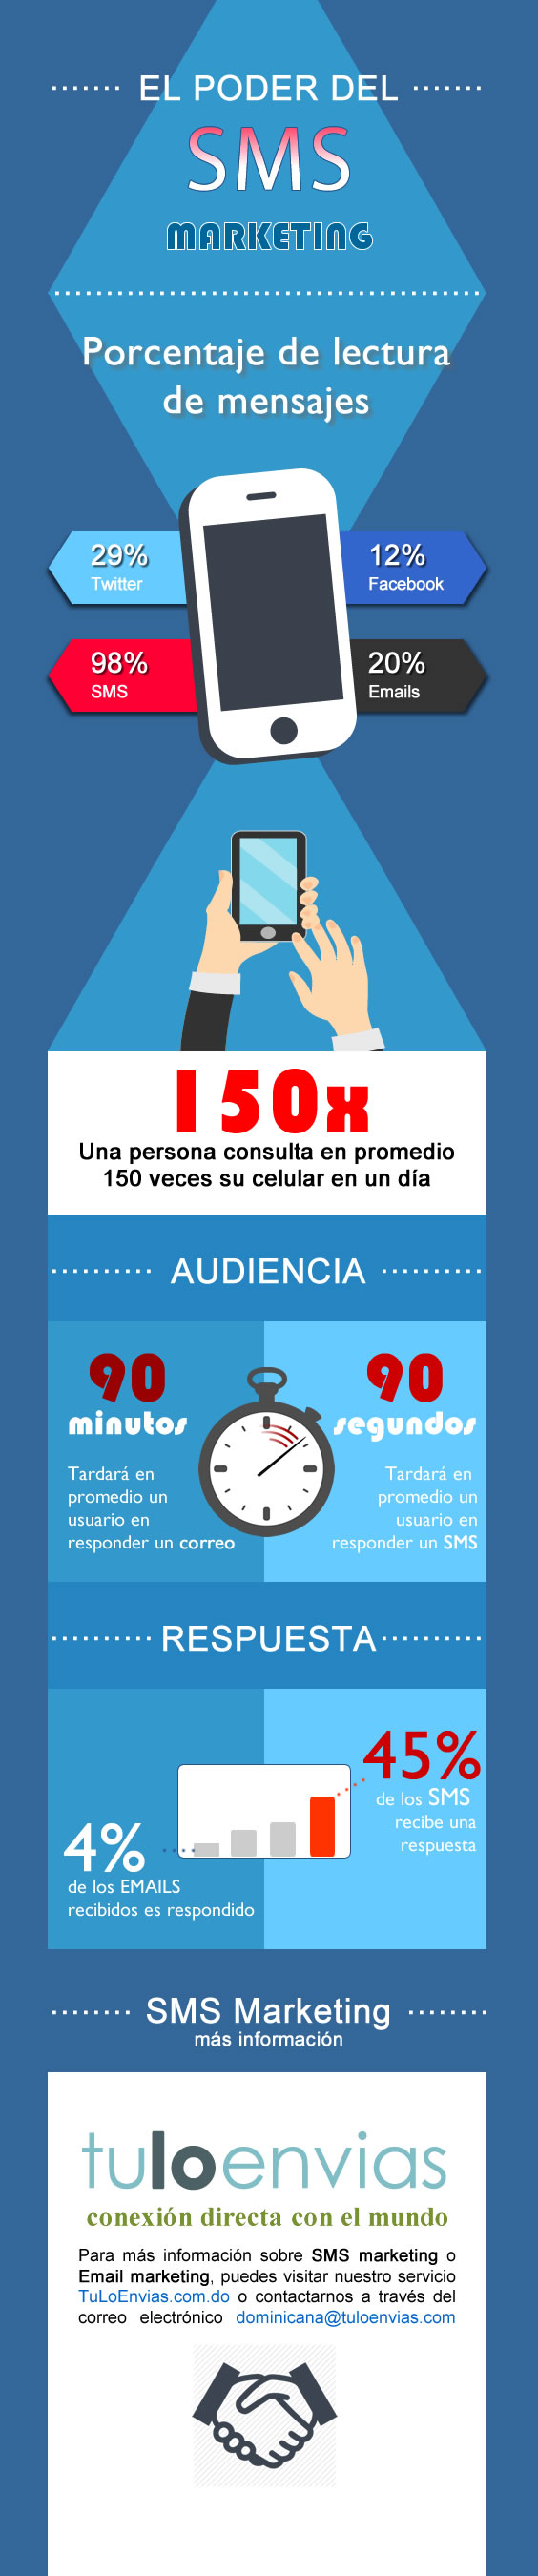 Beneficios del SMS Marketing